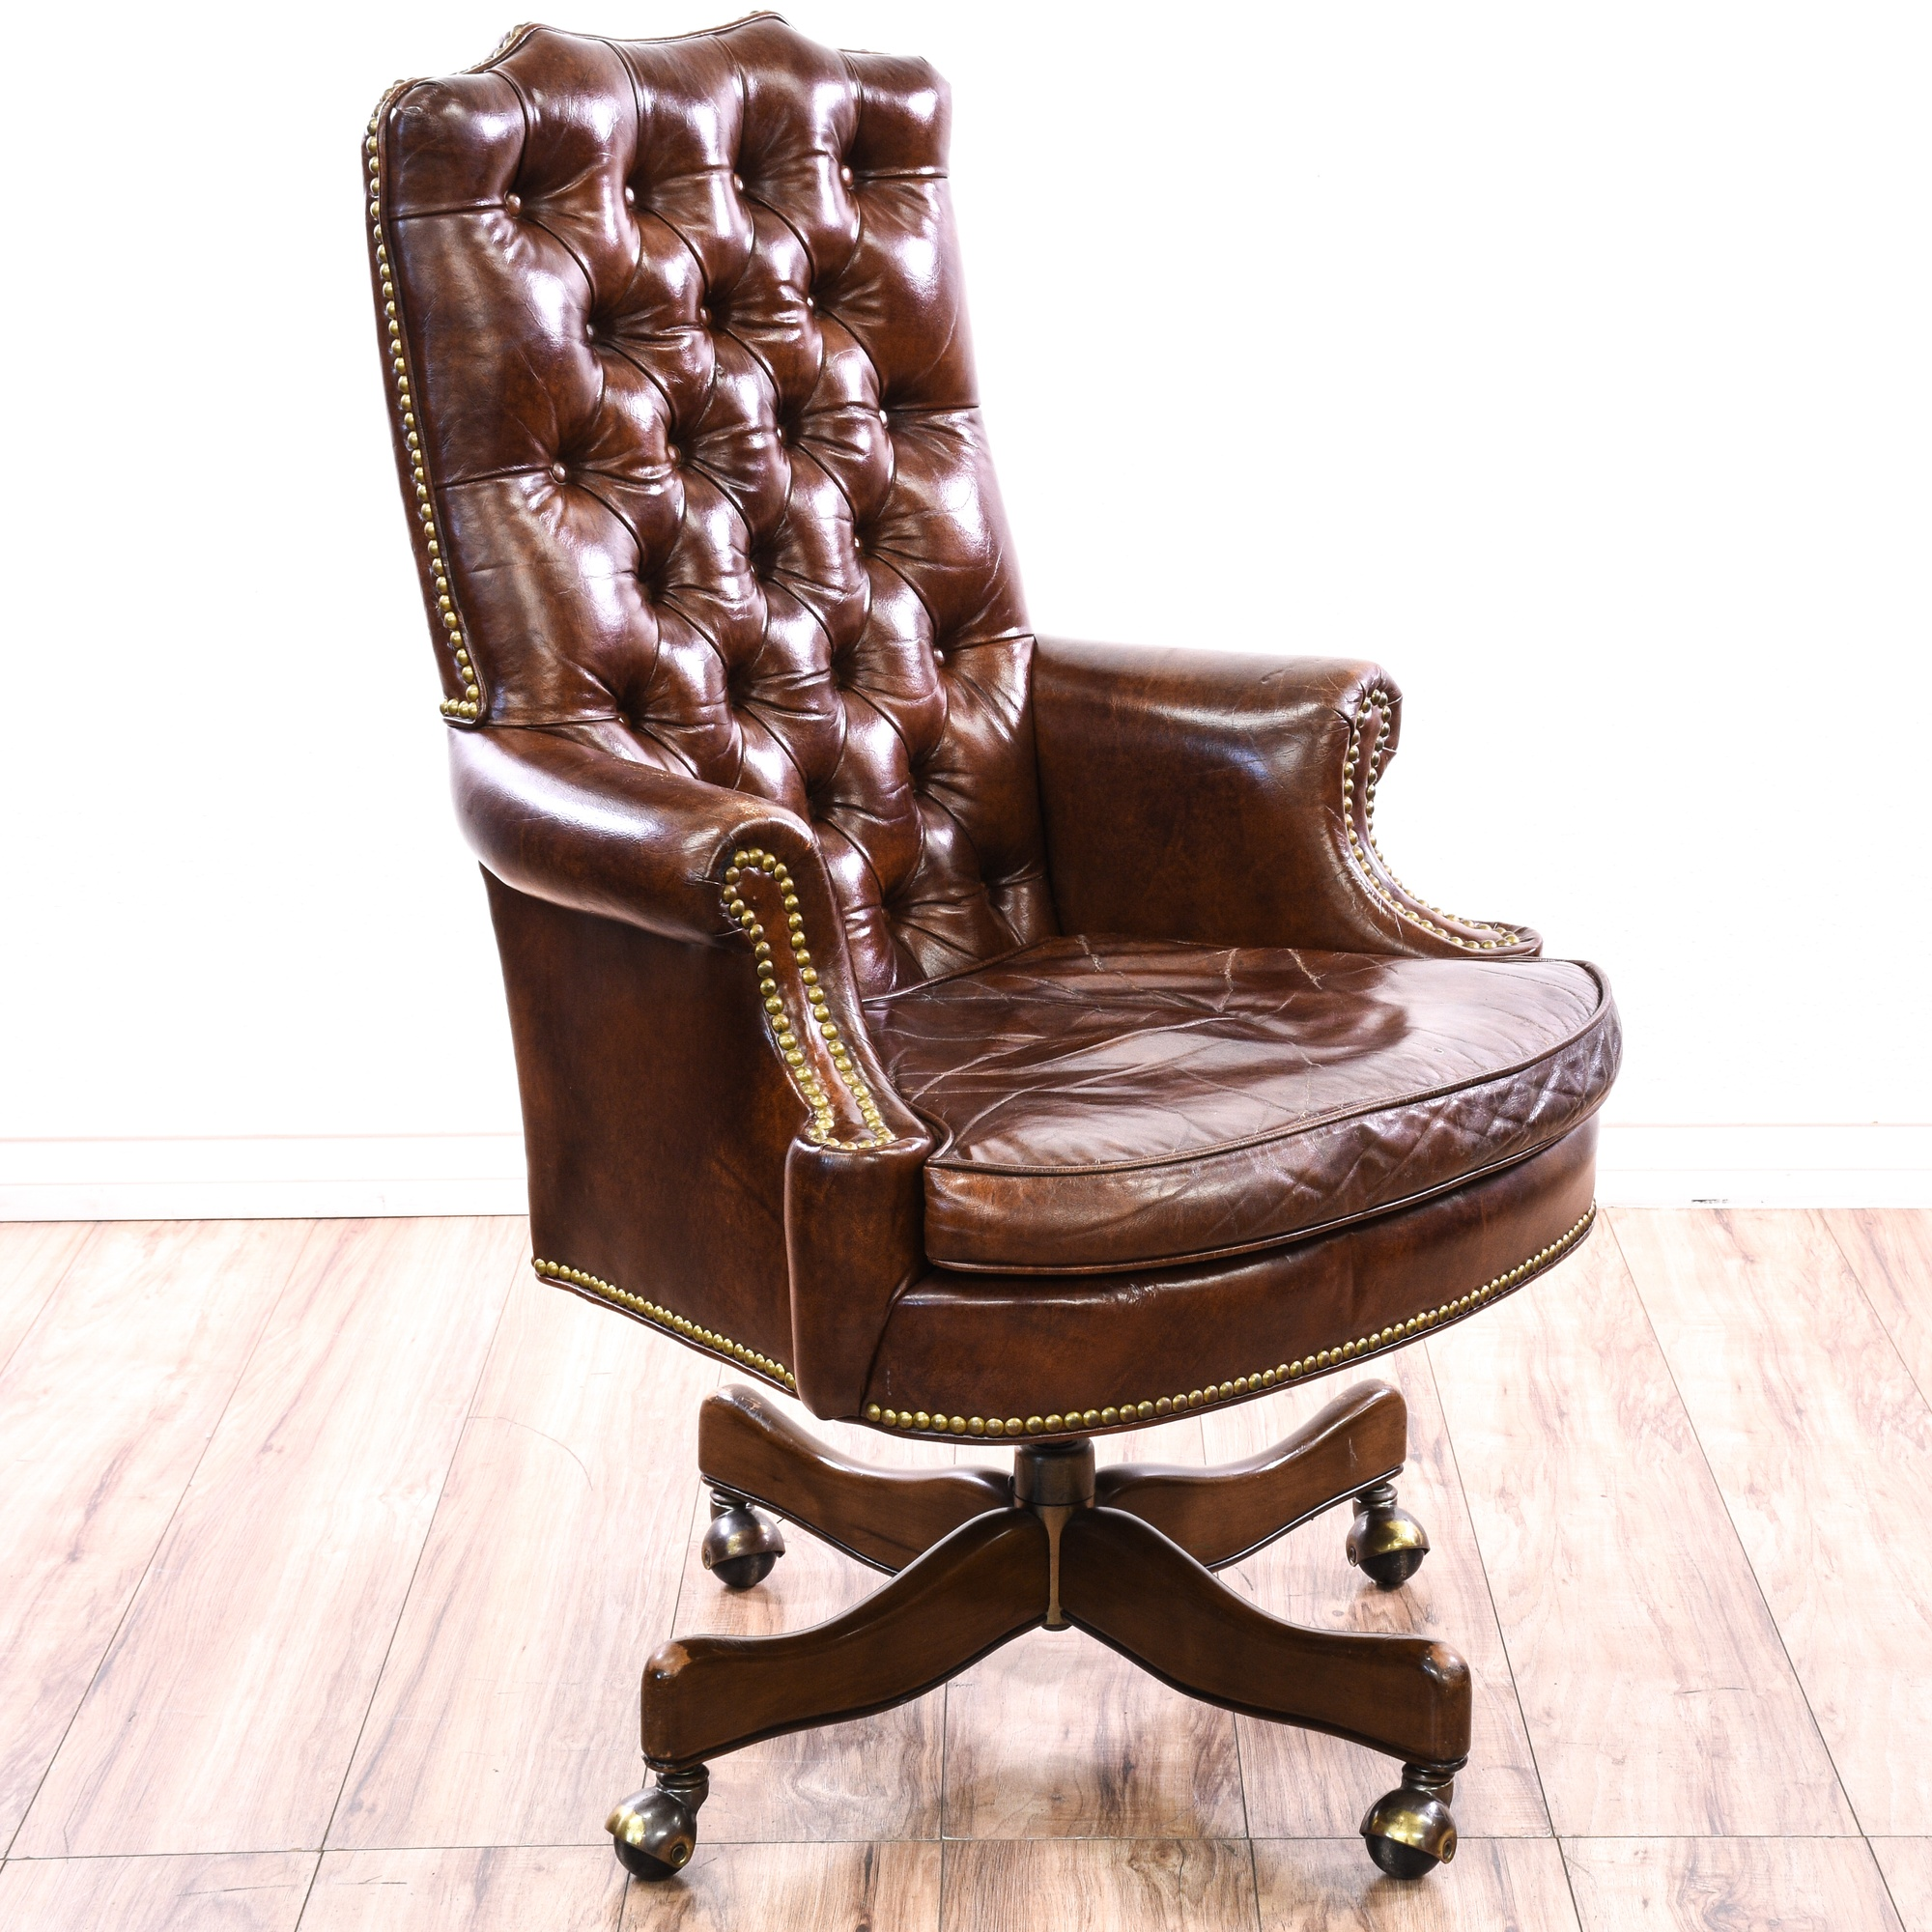 Tufted Brown Leather Studded Executive Chair | Loveseat ...